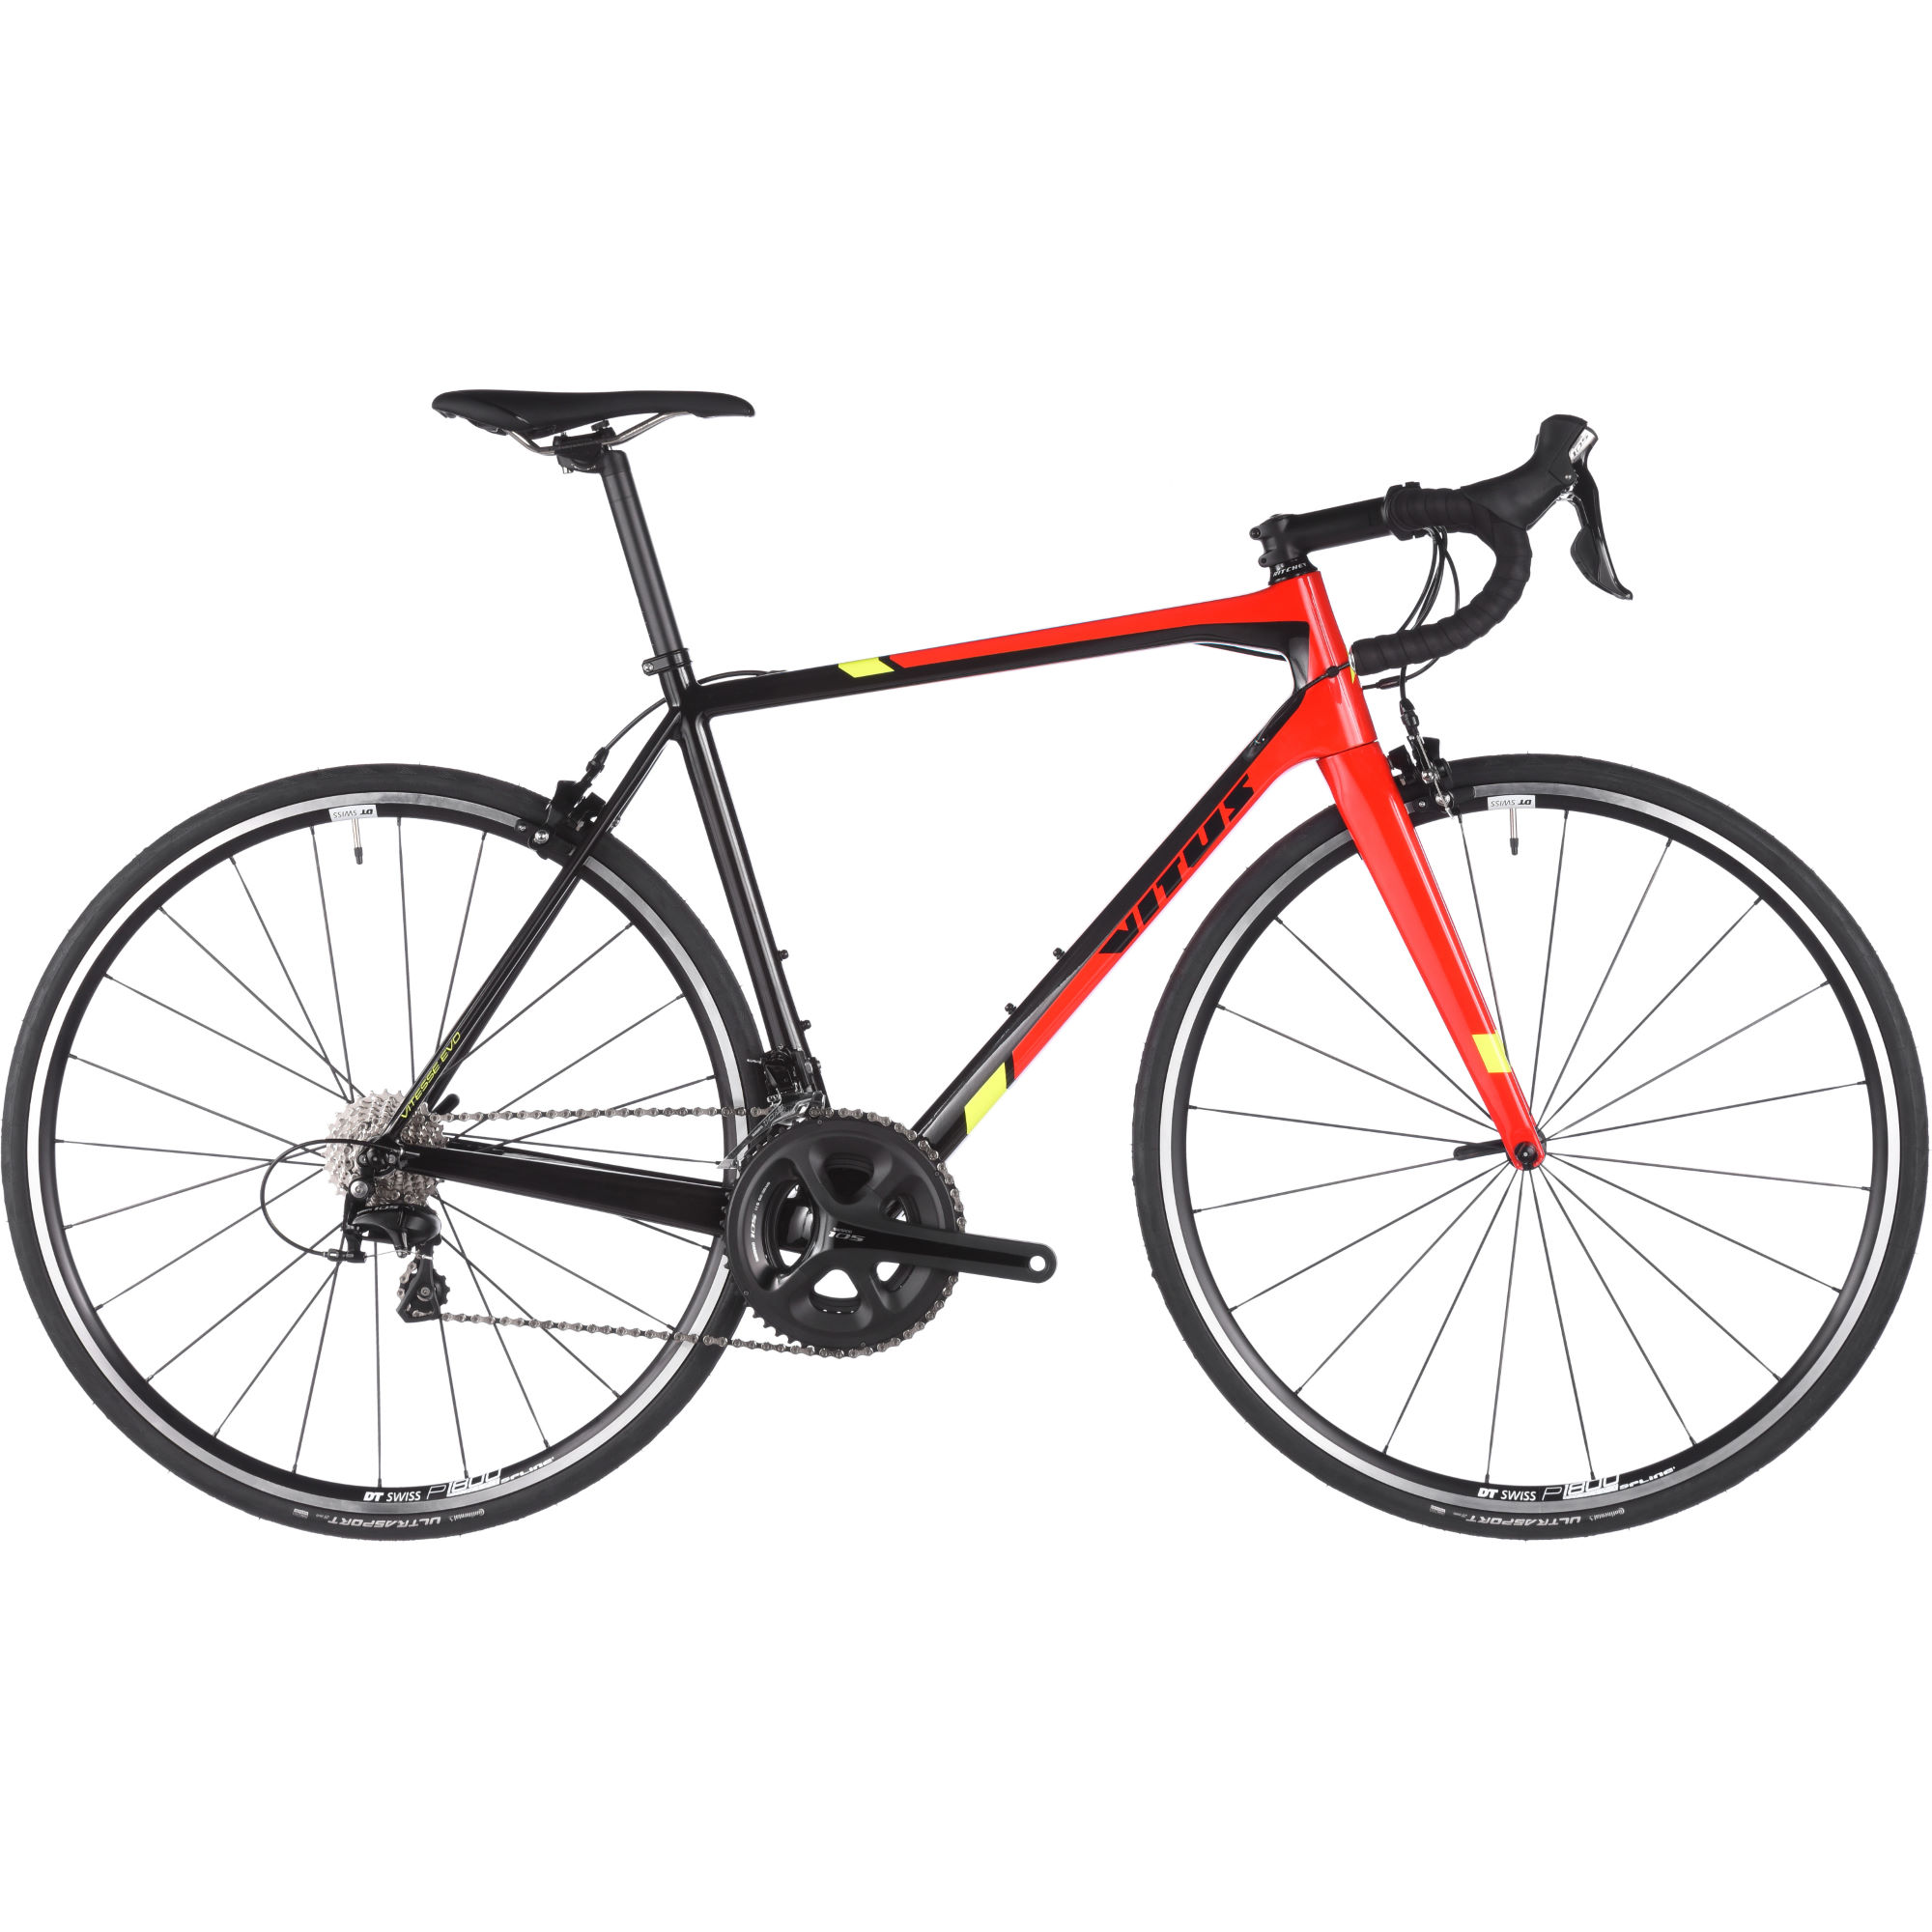 v los de route comp tition vitus bikes vitesse evo 105 2018 road bike wiggle france. Black Bedroom Furniture Sets. Home Design Ideas